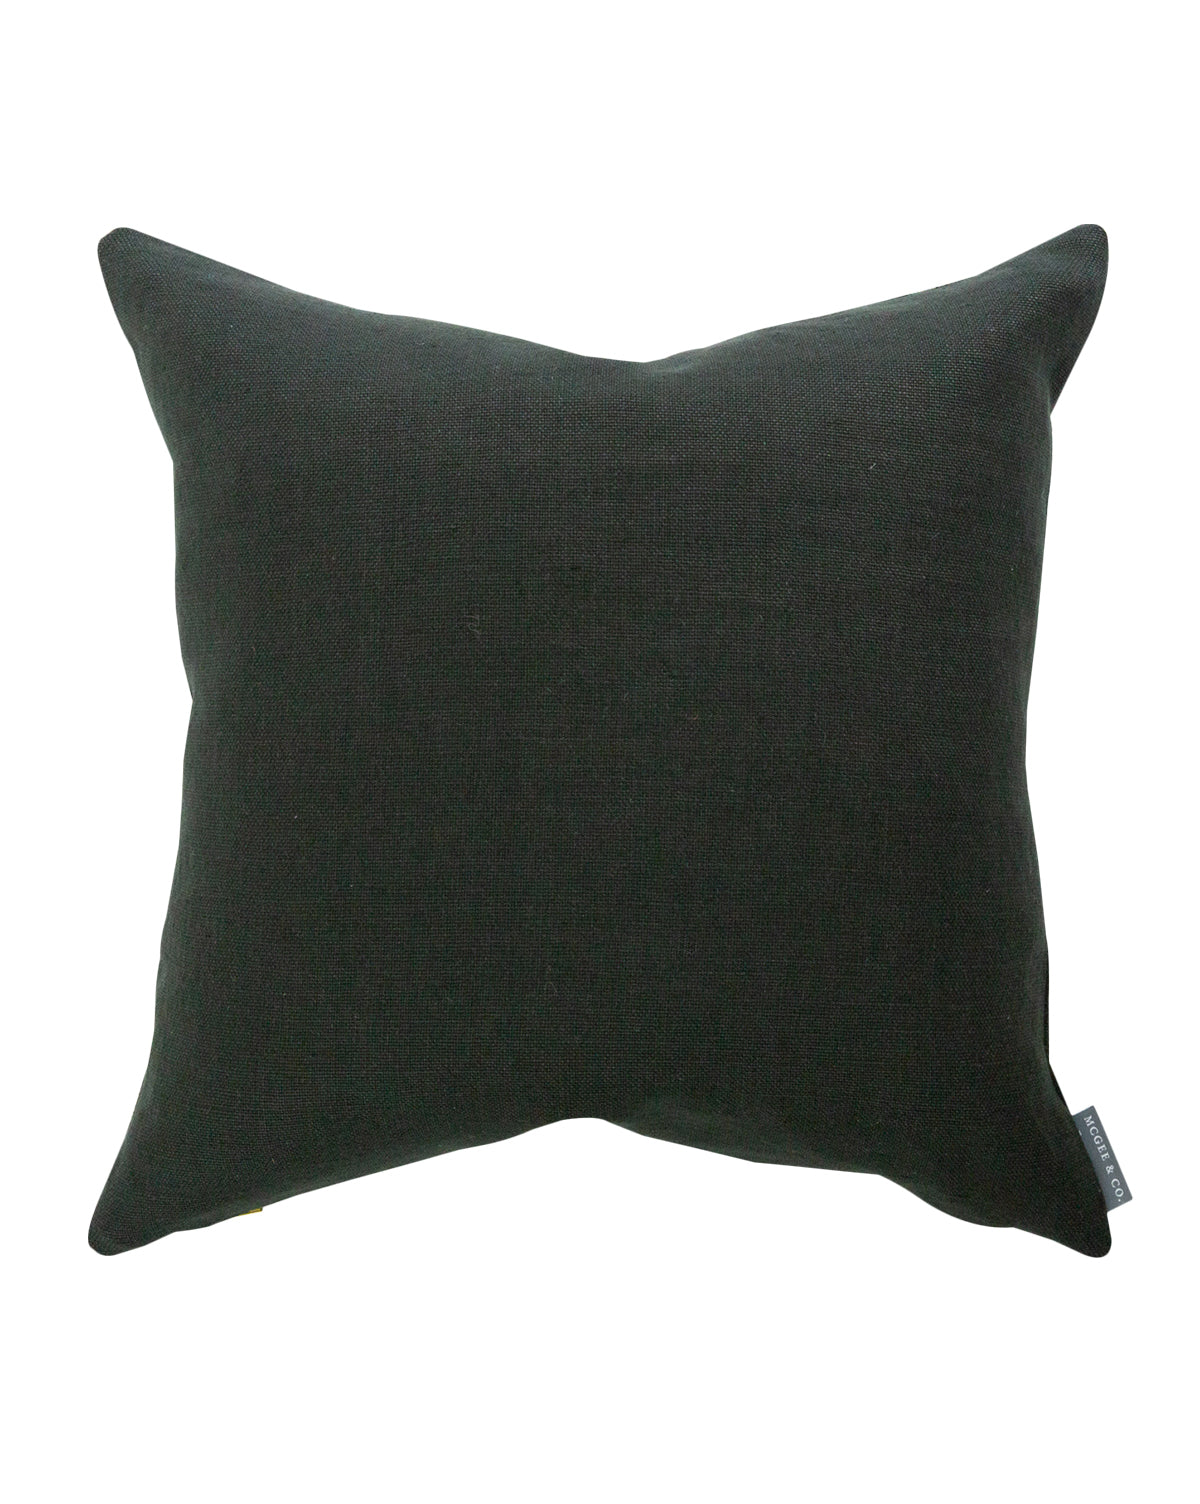 Bristol Fern Pillow Cover